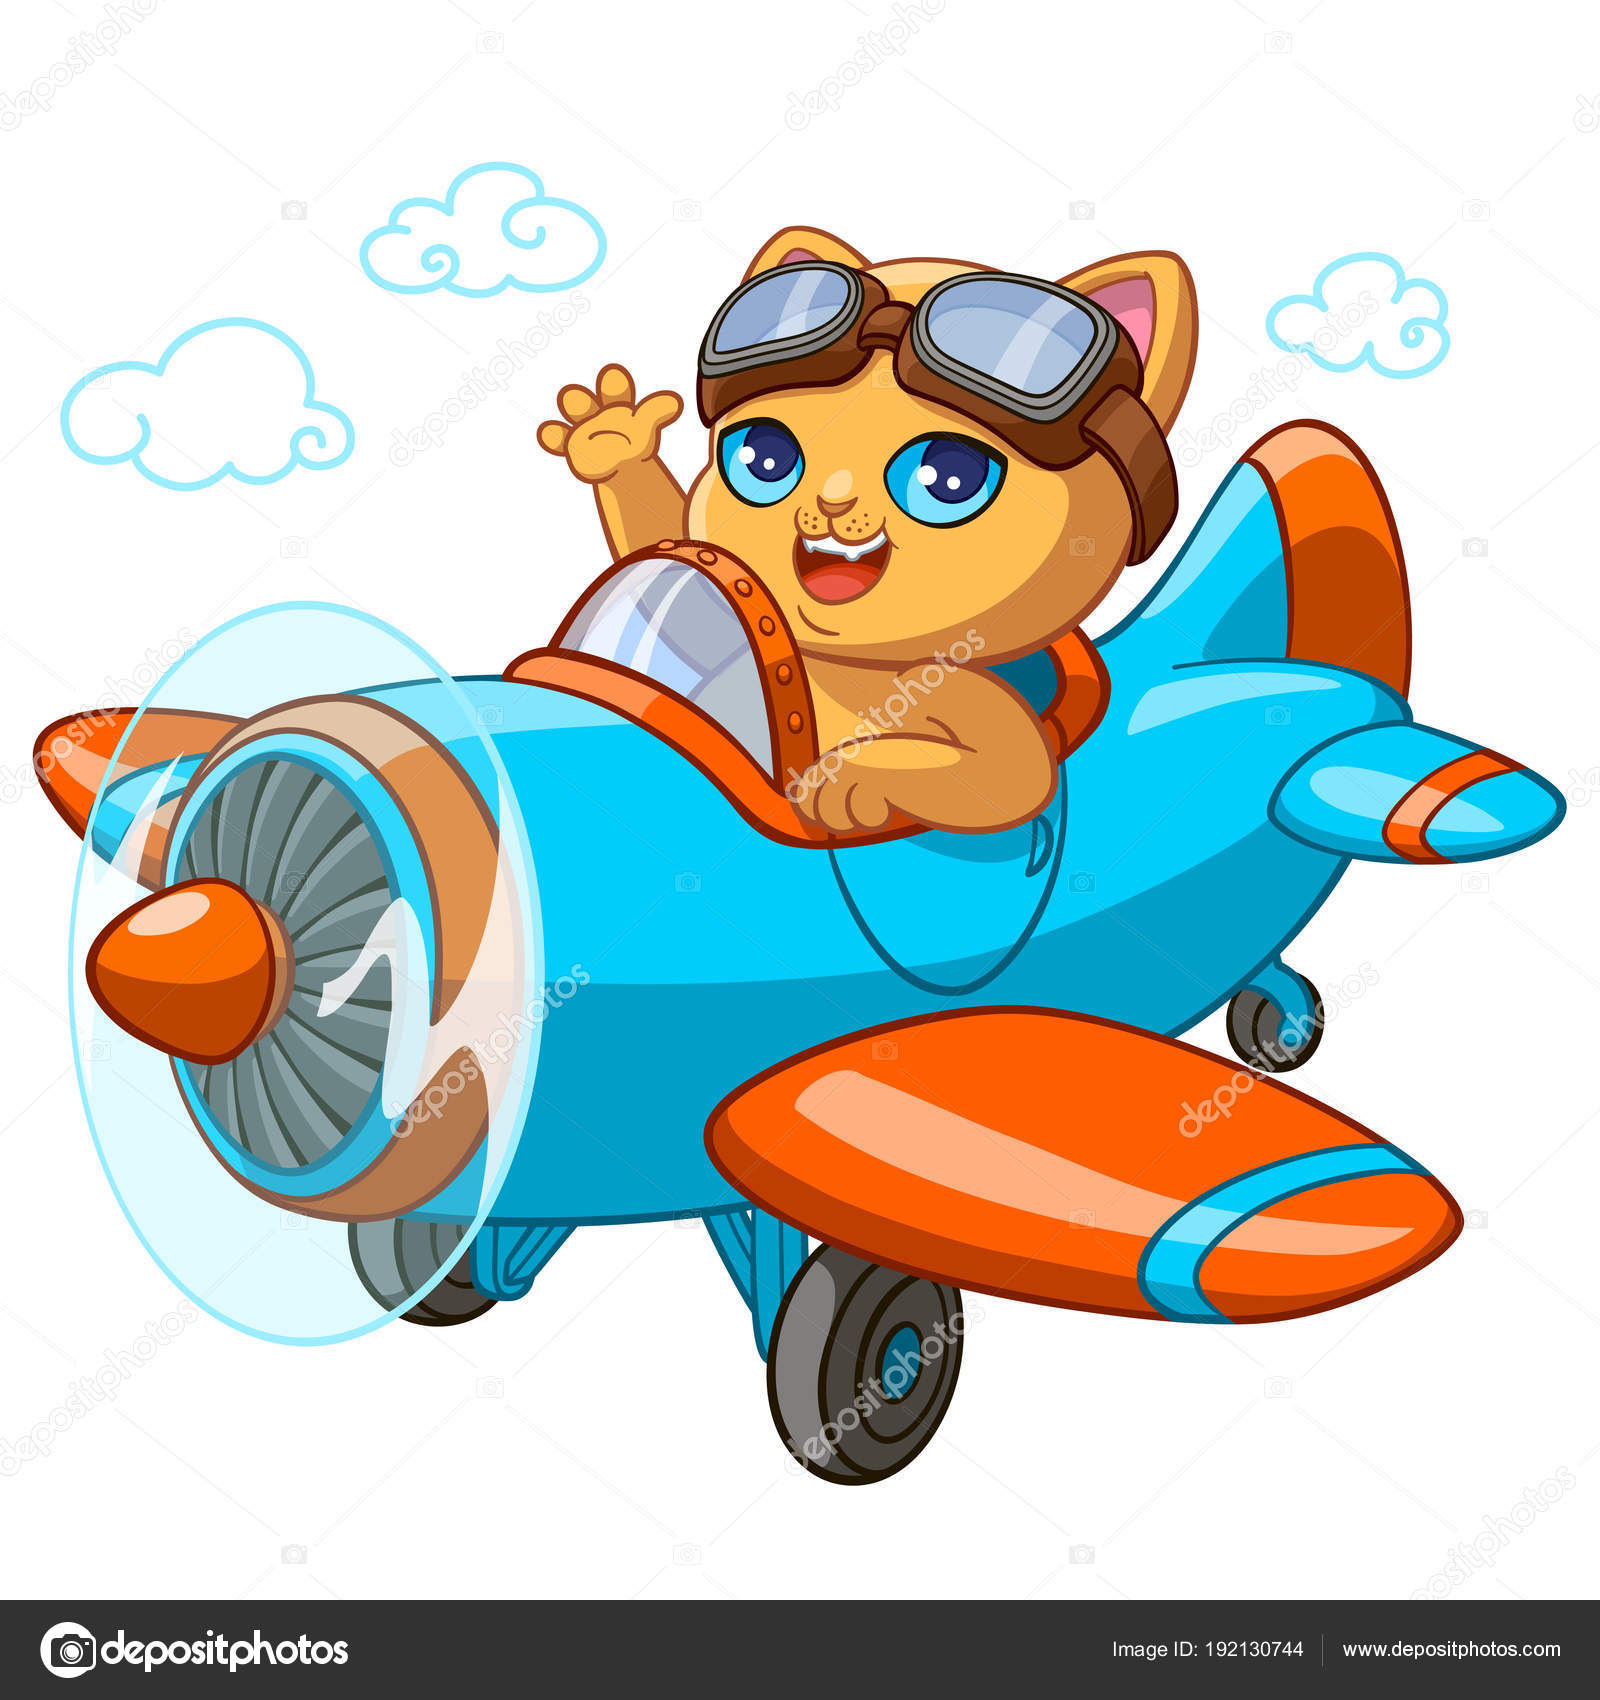 Kitty Pilot Cartoon Vector Illustration Of Kitten In Toy Airplane